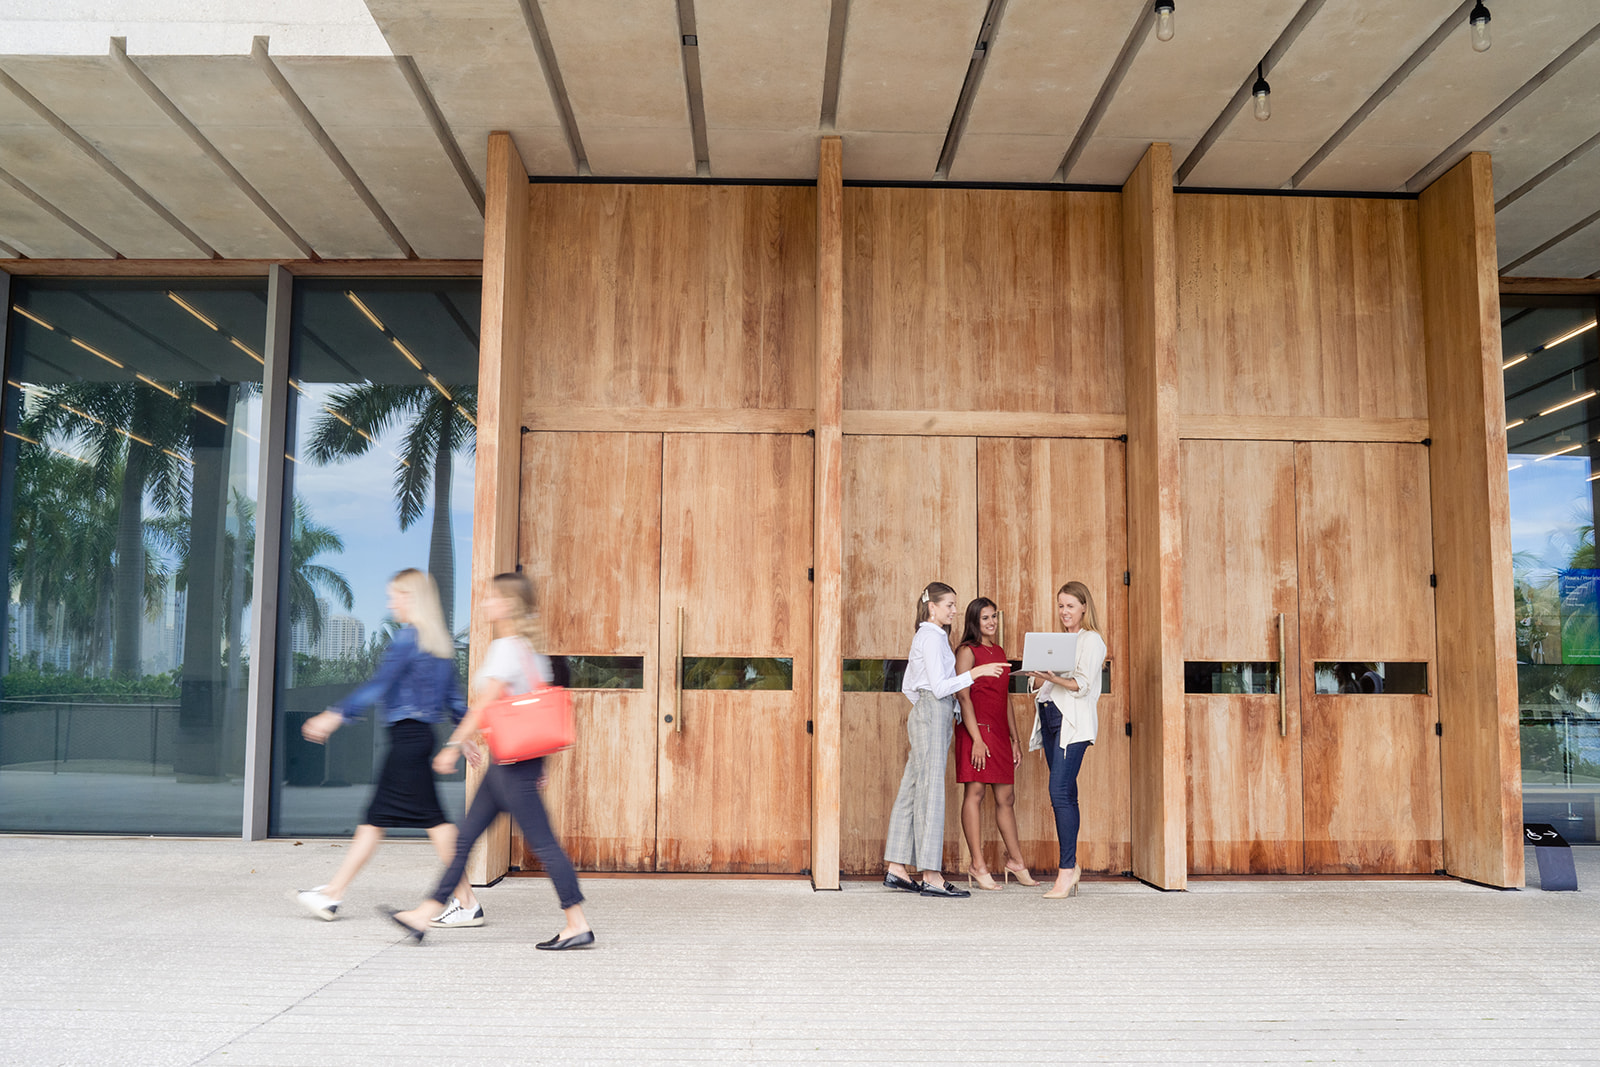 Students outside in front of a large wooden and glass structure